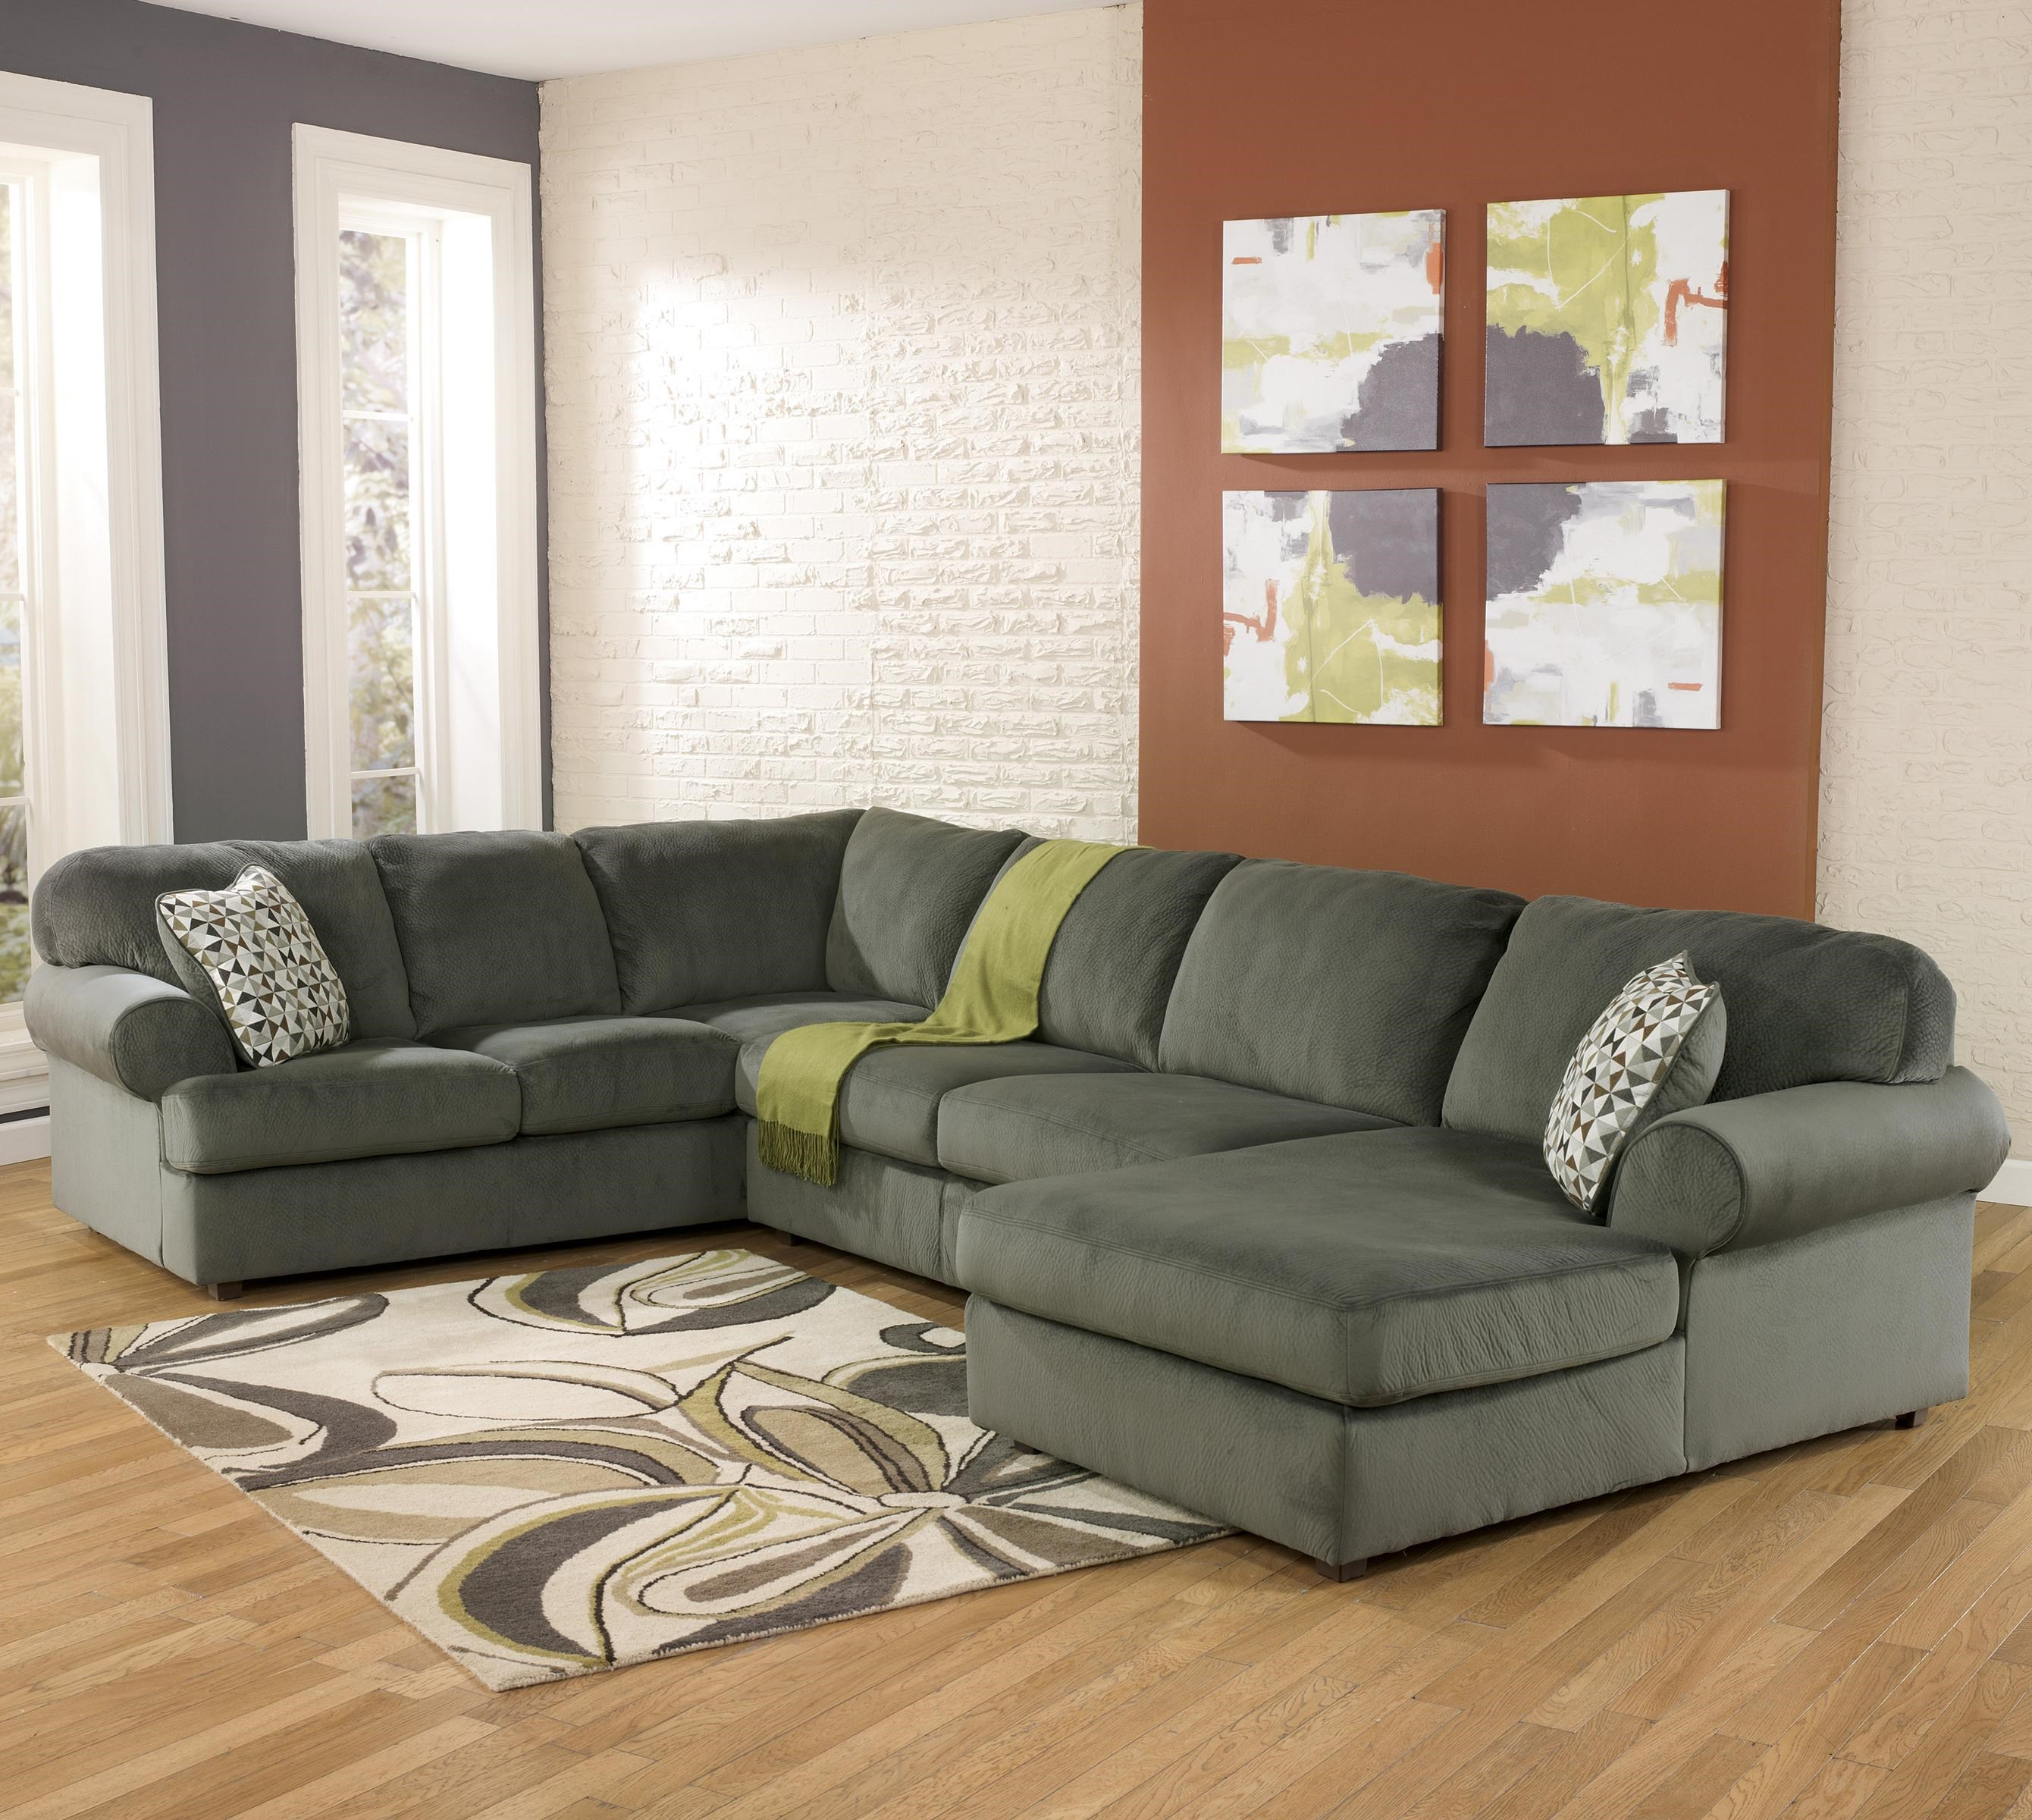 Merveilleux Signature Design By Ashley Jessa Place   PewterSectional Sofa With Right  Chaise ...